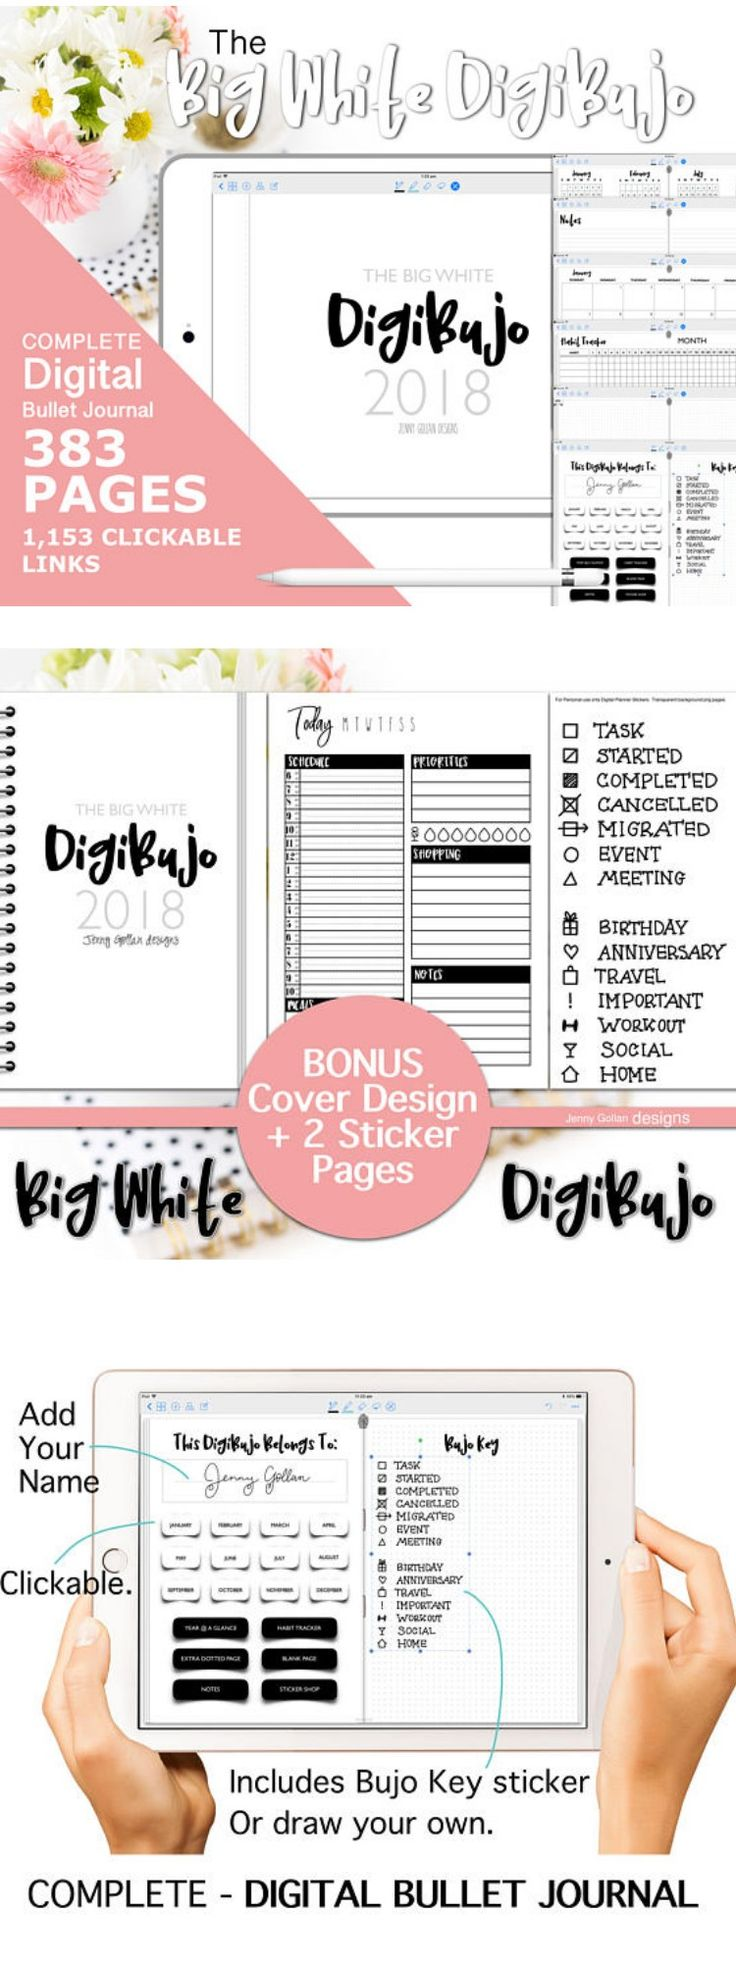 This Digital bullet journal is your very own digital planner system for iOS and Android eg the GoodNotes app on an iPad and Xodo for Android users. Includes 383 pages covering every single day of the year with 1,153 clickable hyperlinks that take guide you through all of the different sections and days of the year. 2018 Year Complete Digital Bullet Journal for GoodNotes with Hyperlinks The Big White DigiBujo Digital Planner #bulletjournals #ad #digitalbujo #planner #etsy…